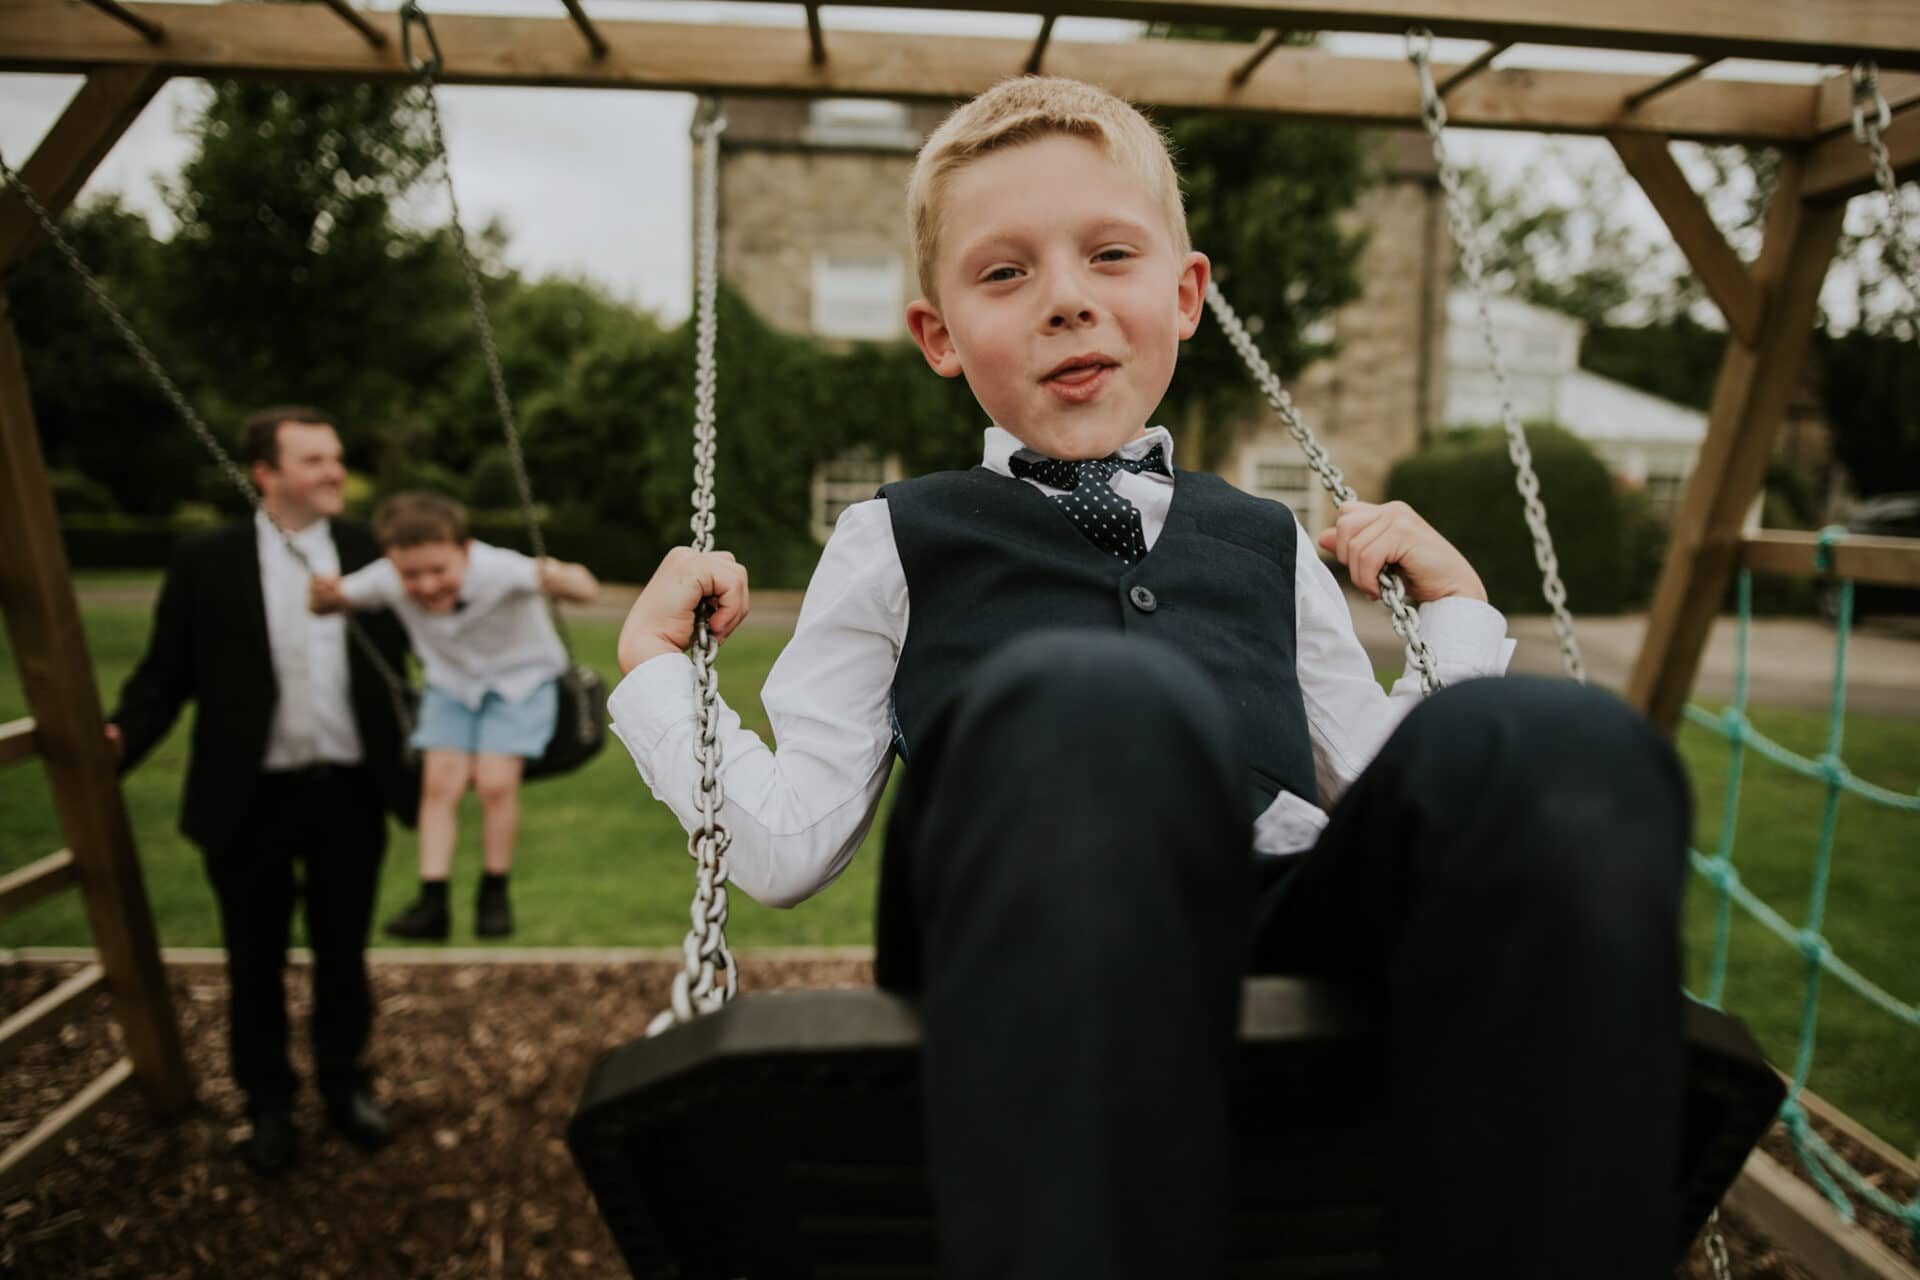 Barnsdale lodge, rutland, wedding guest on a swing